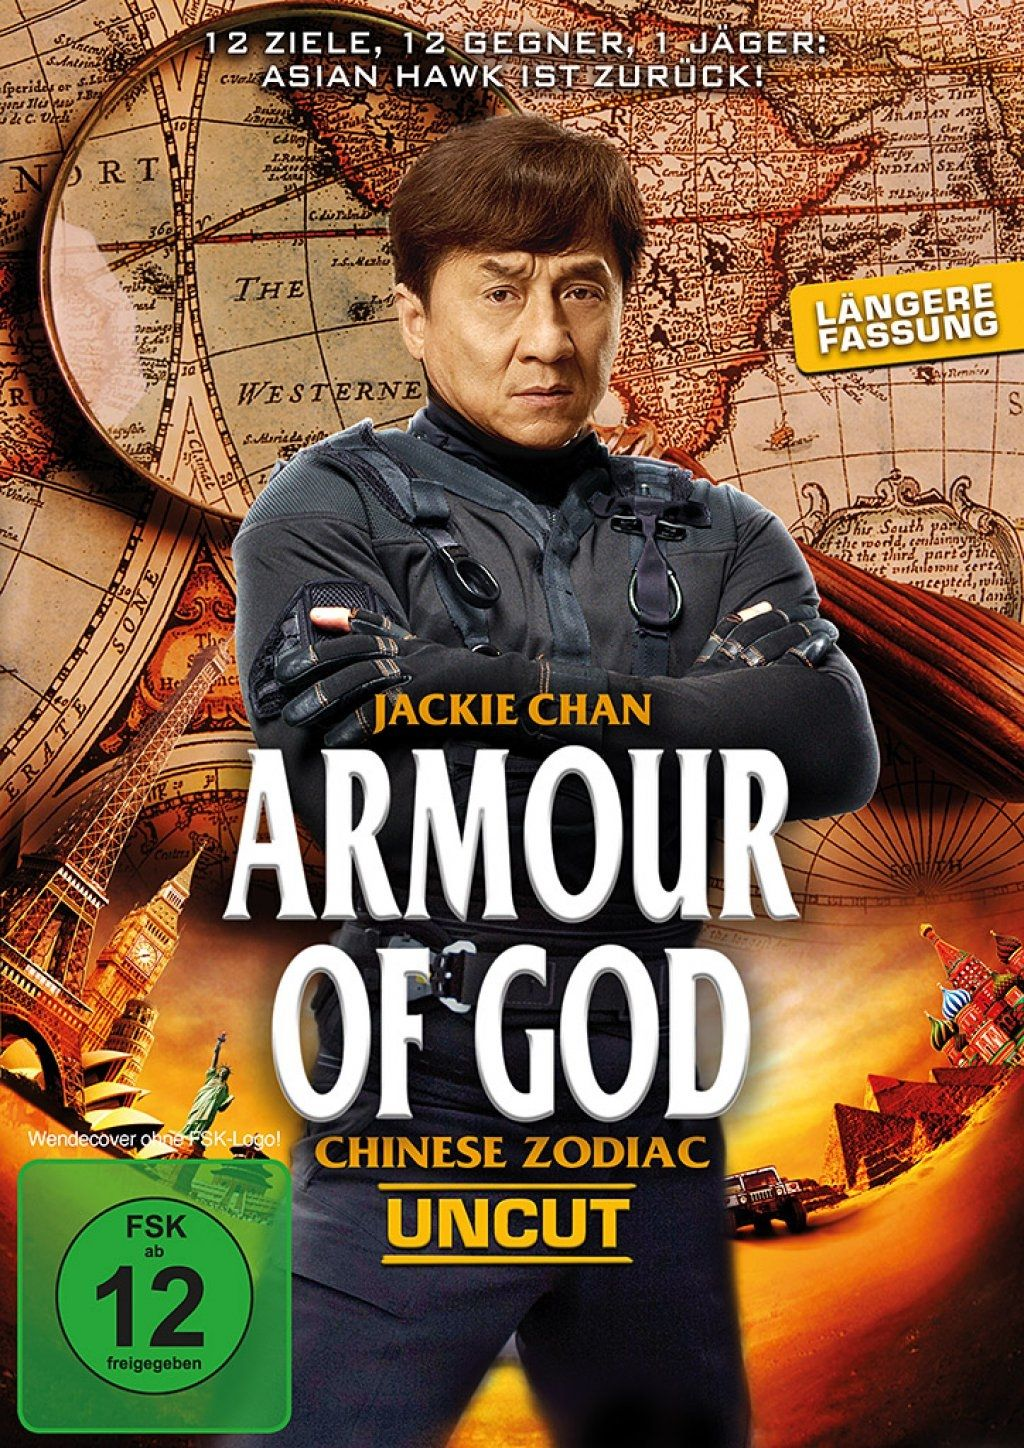 Armour of God - Chinese Zodiac (Extended Version) (Uncut)